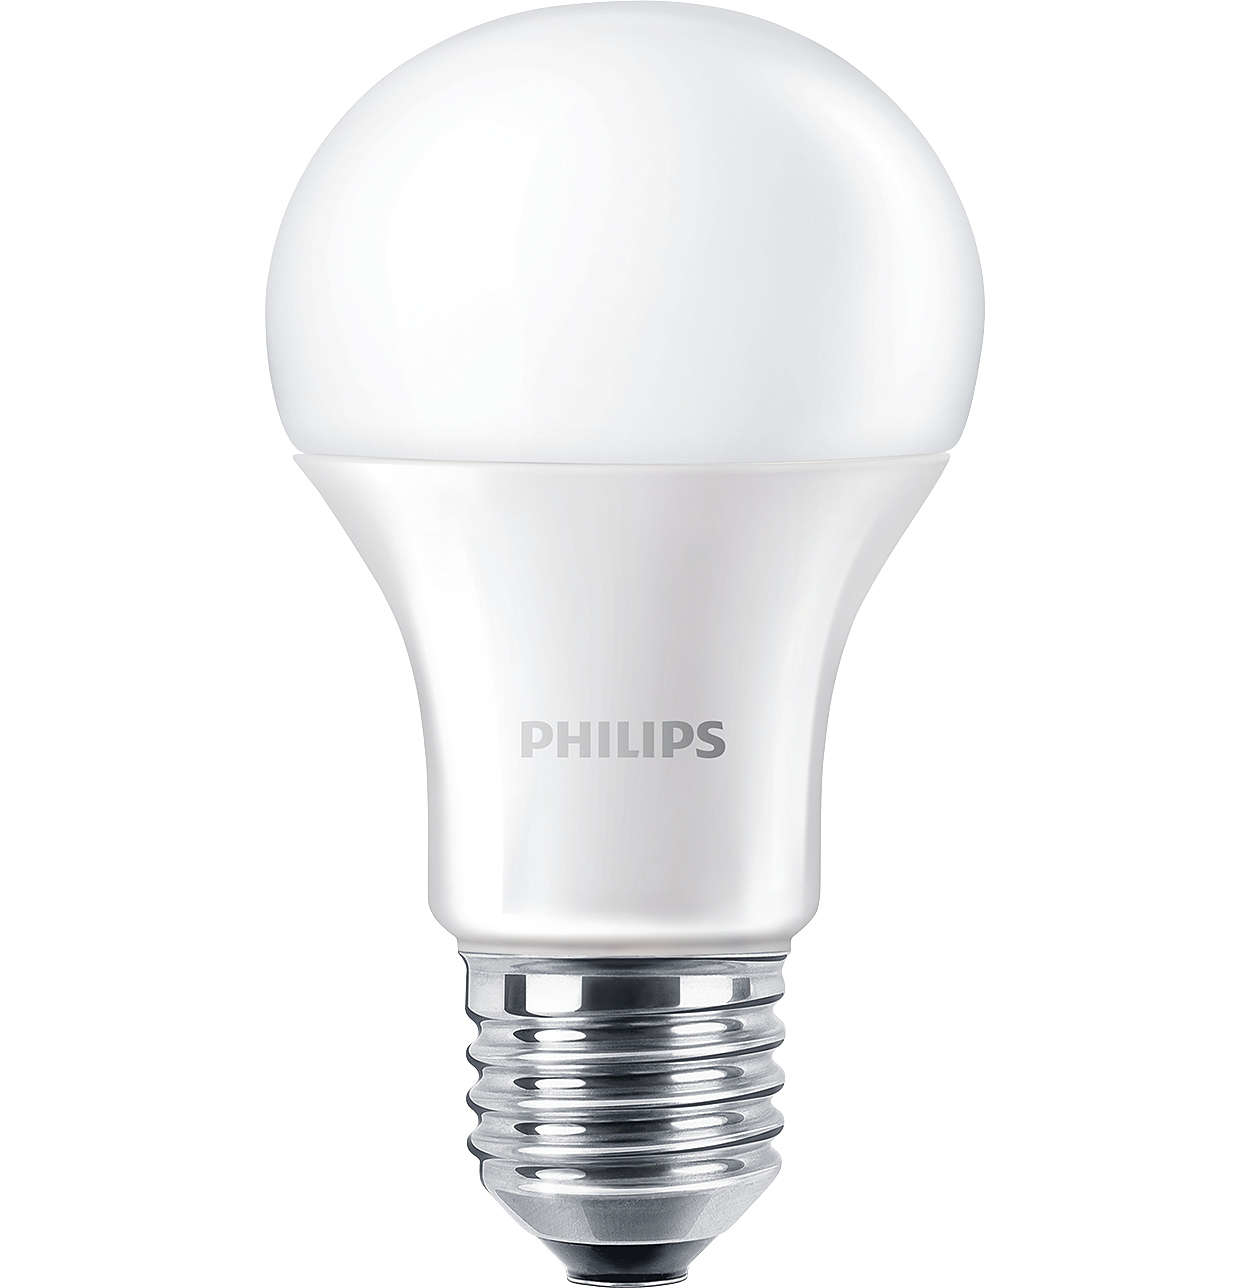 Philips - Lampadina LED - Core100840